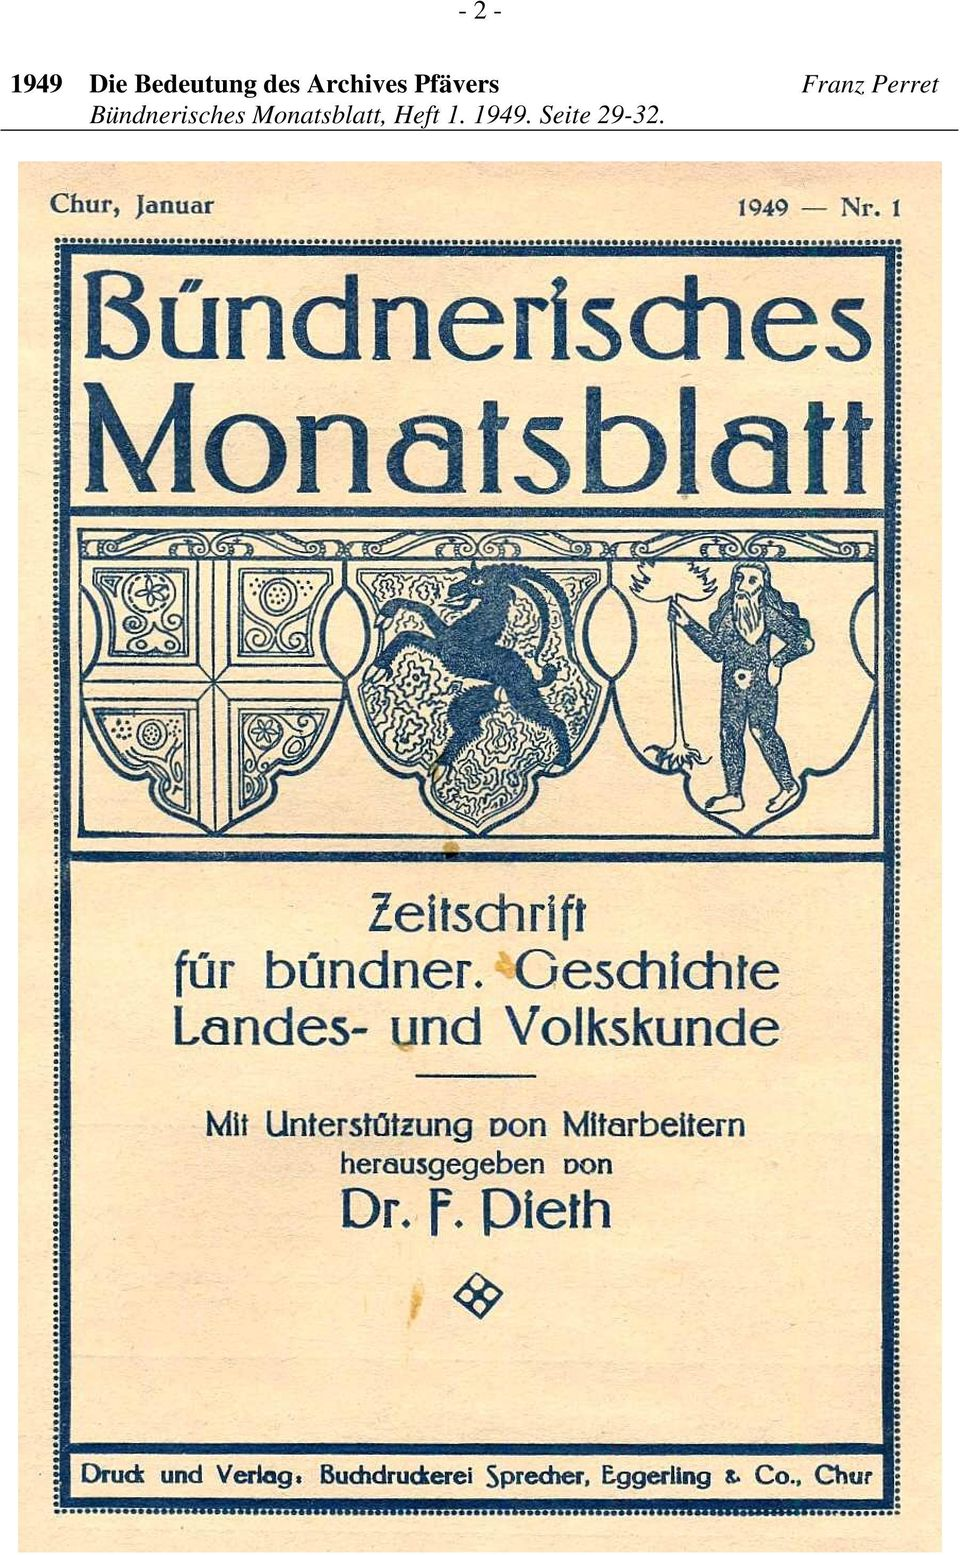 Perret Bündnerisches